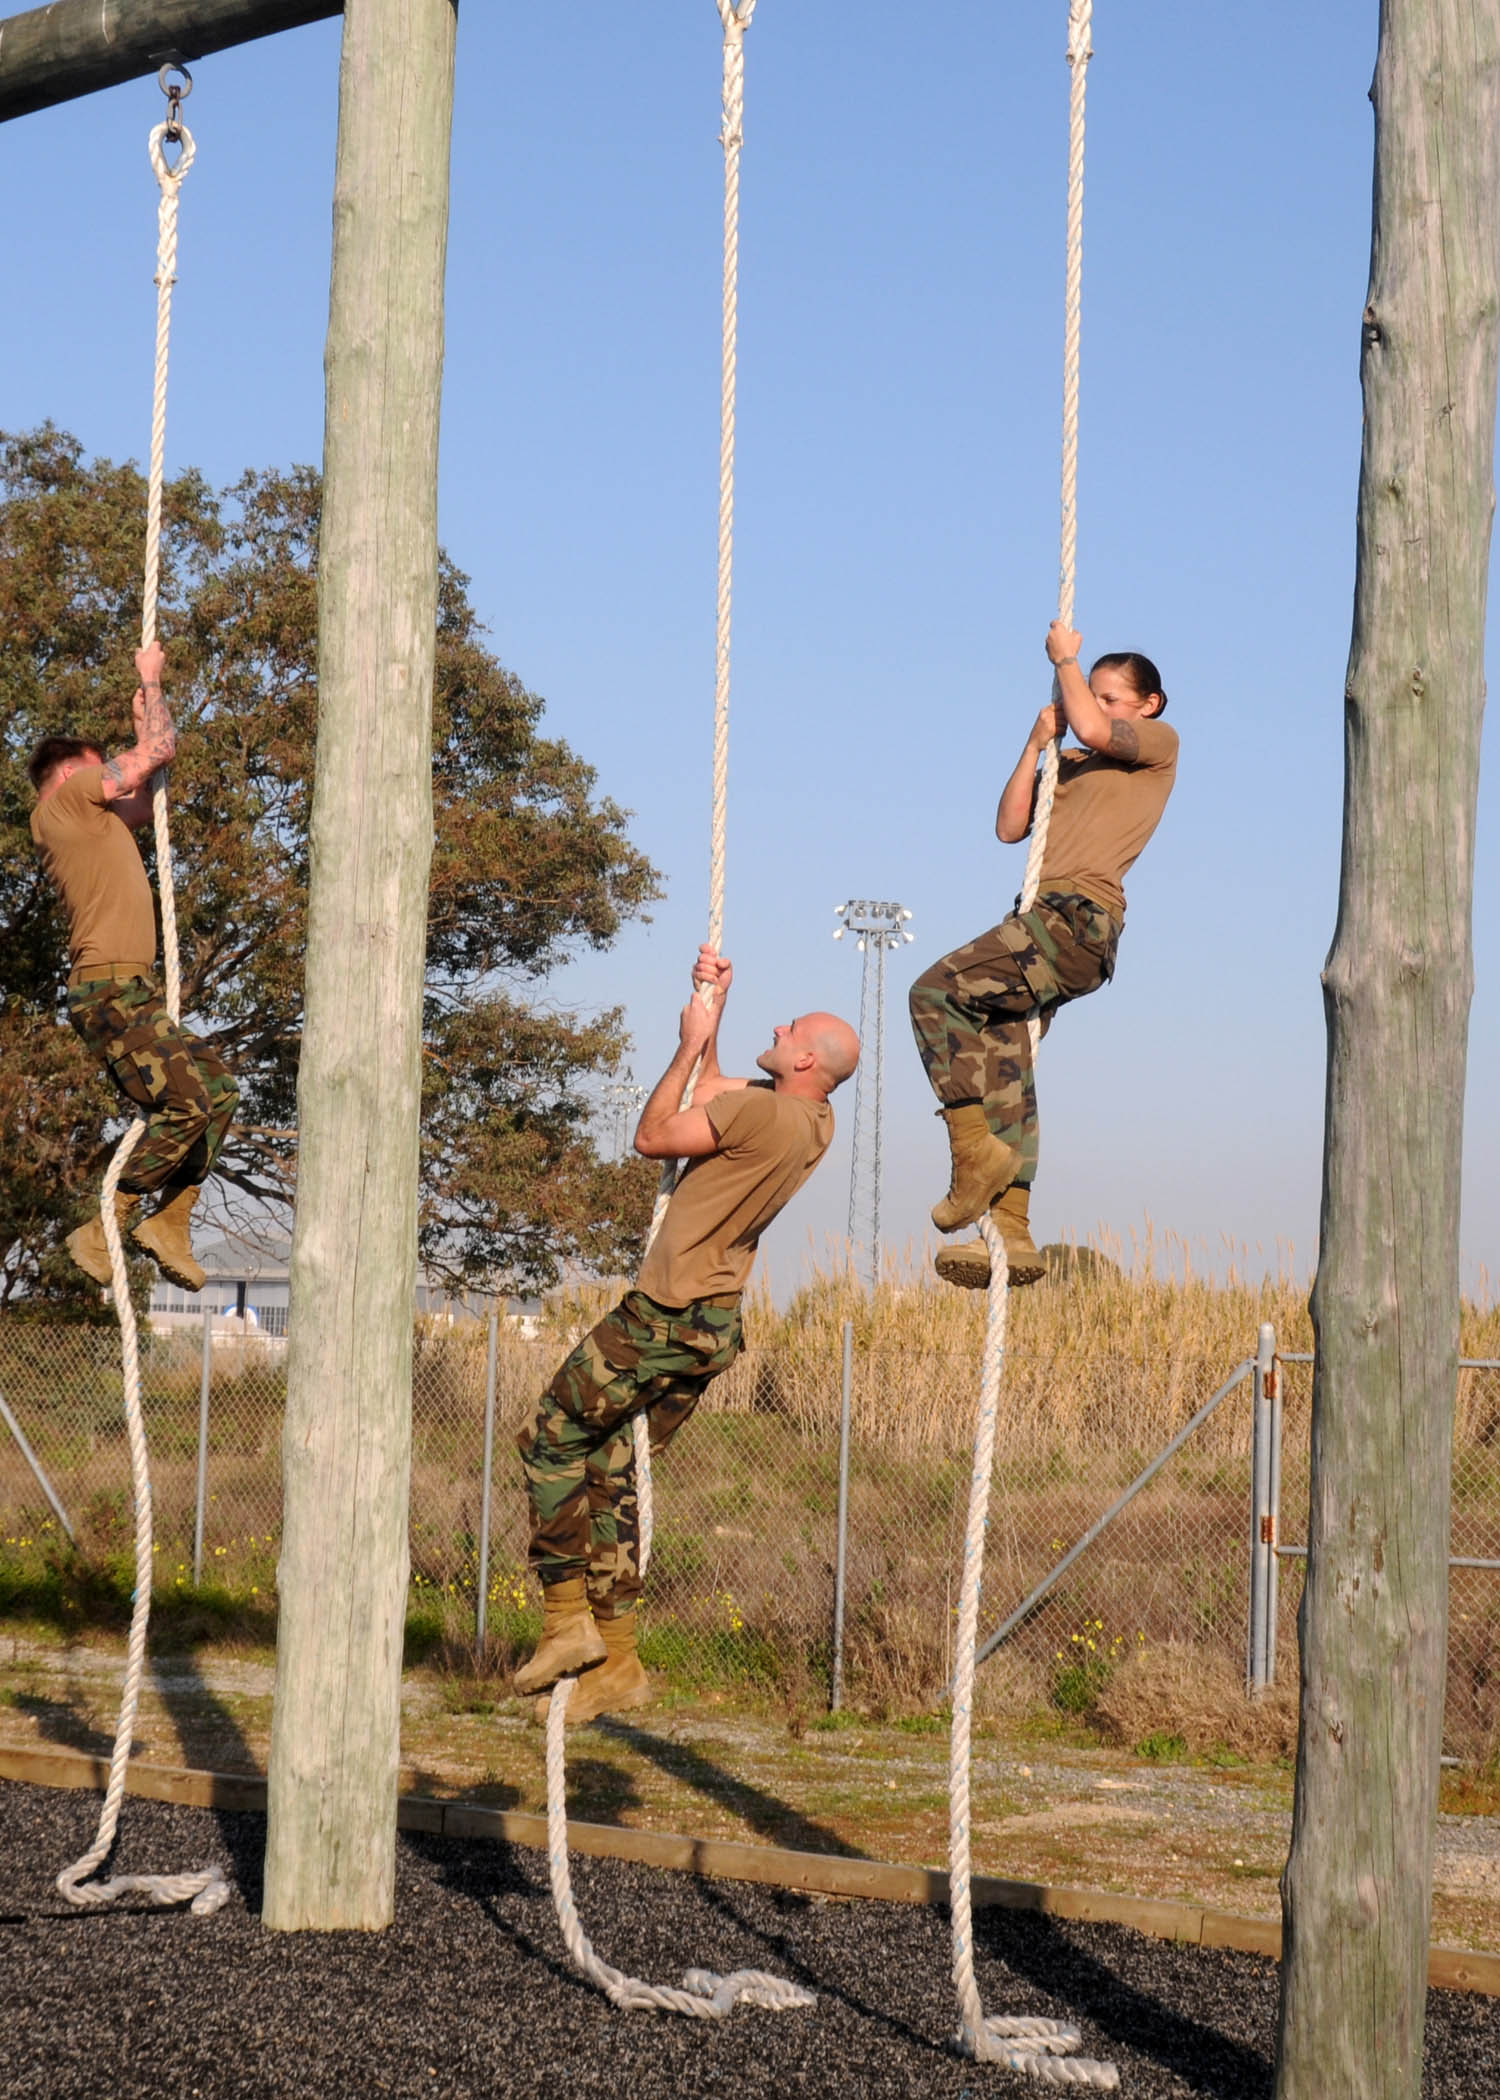 Construction nmcb 74 attempt the marine corps obstacle course at